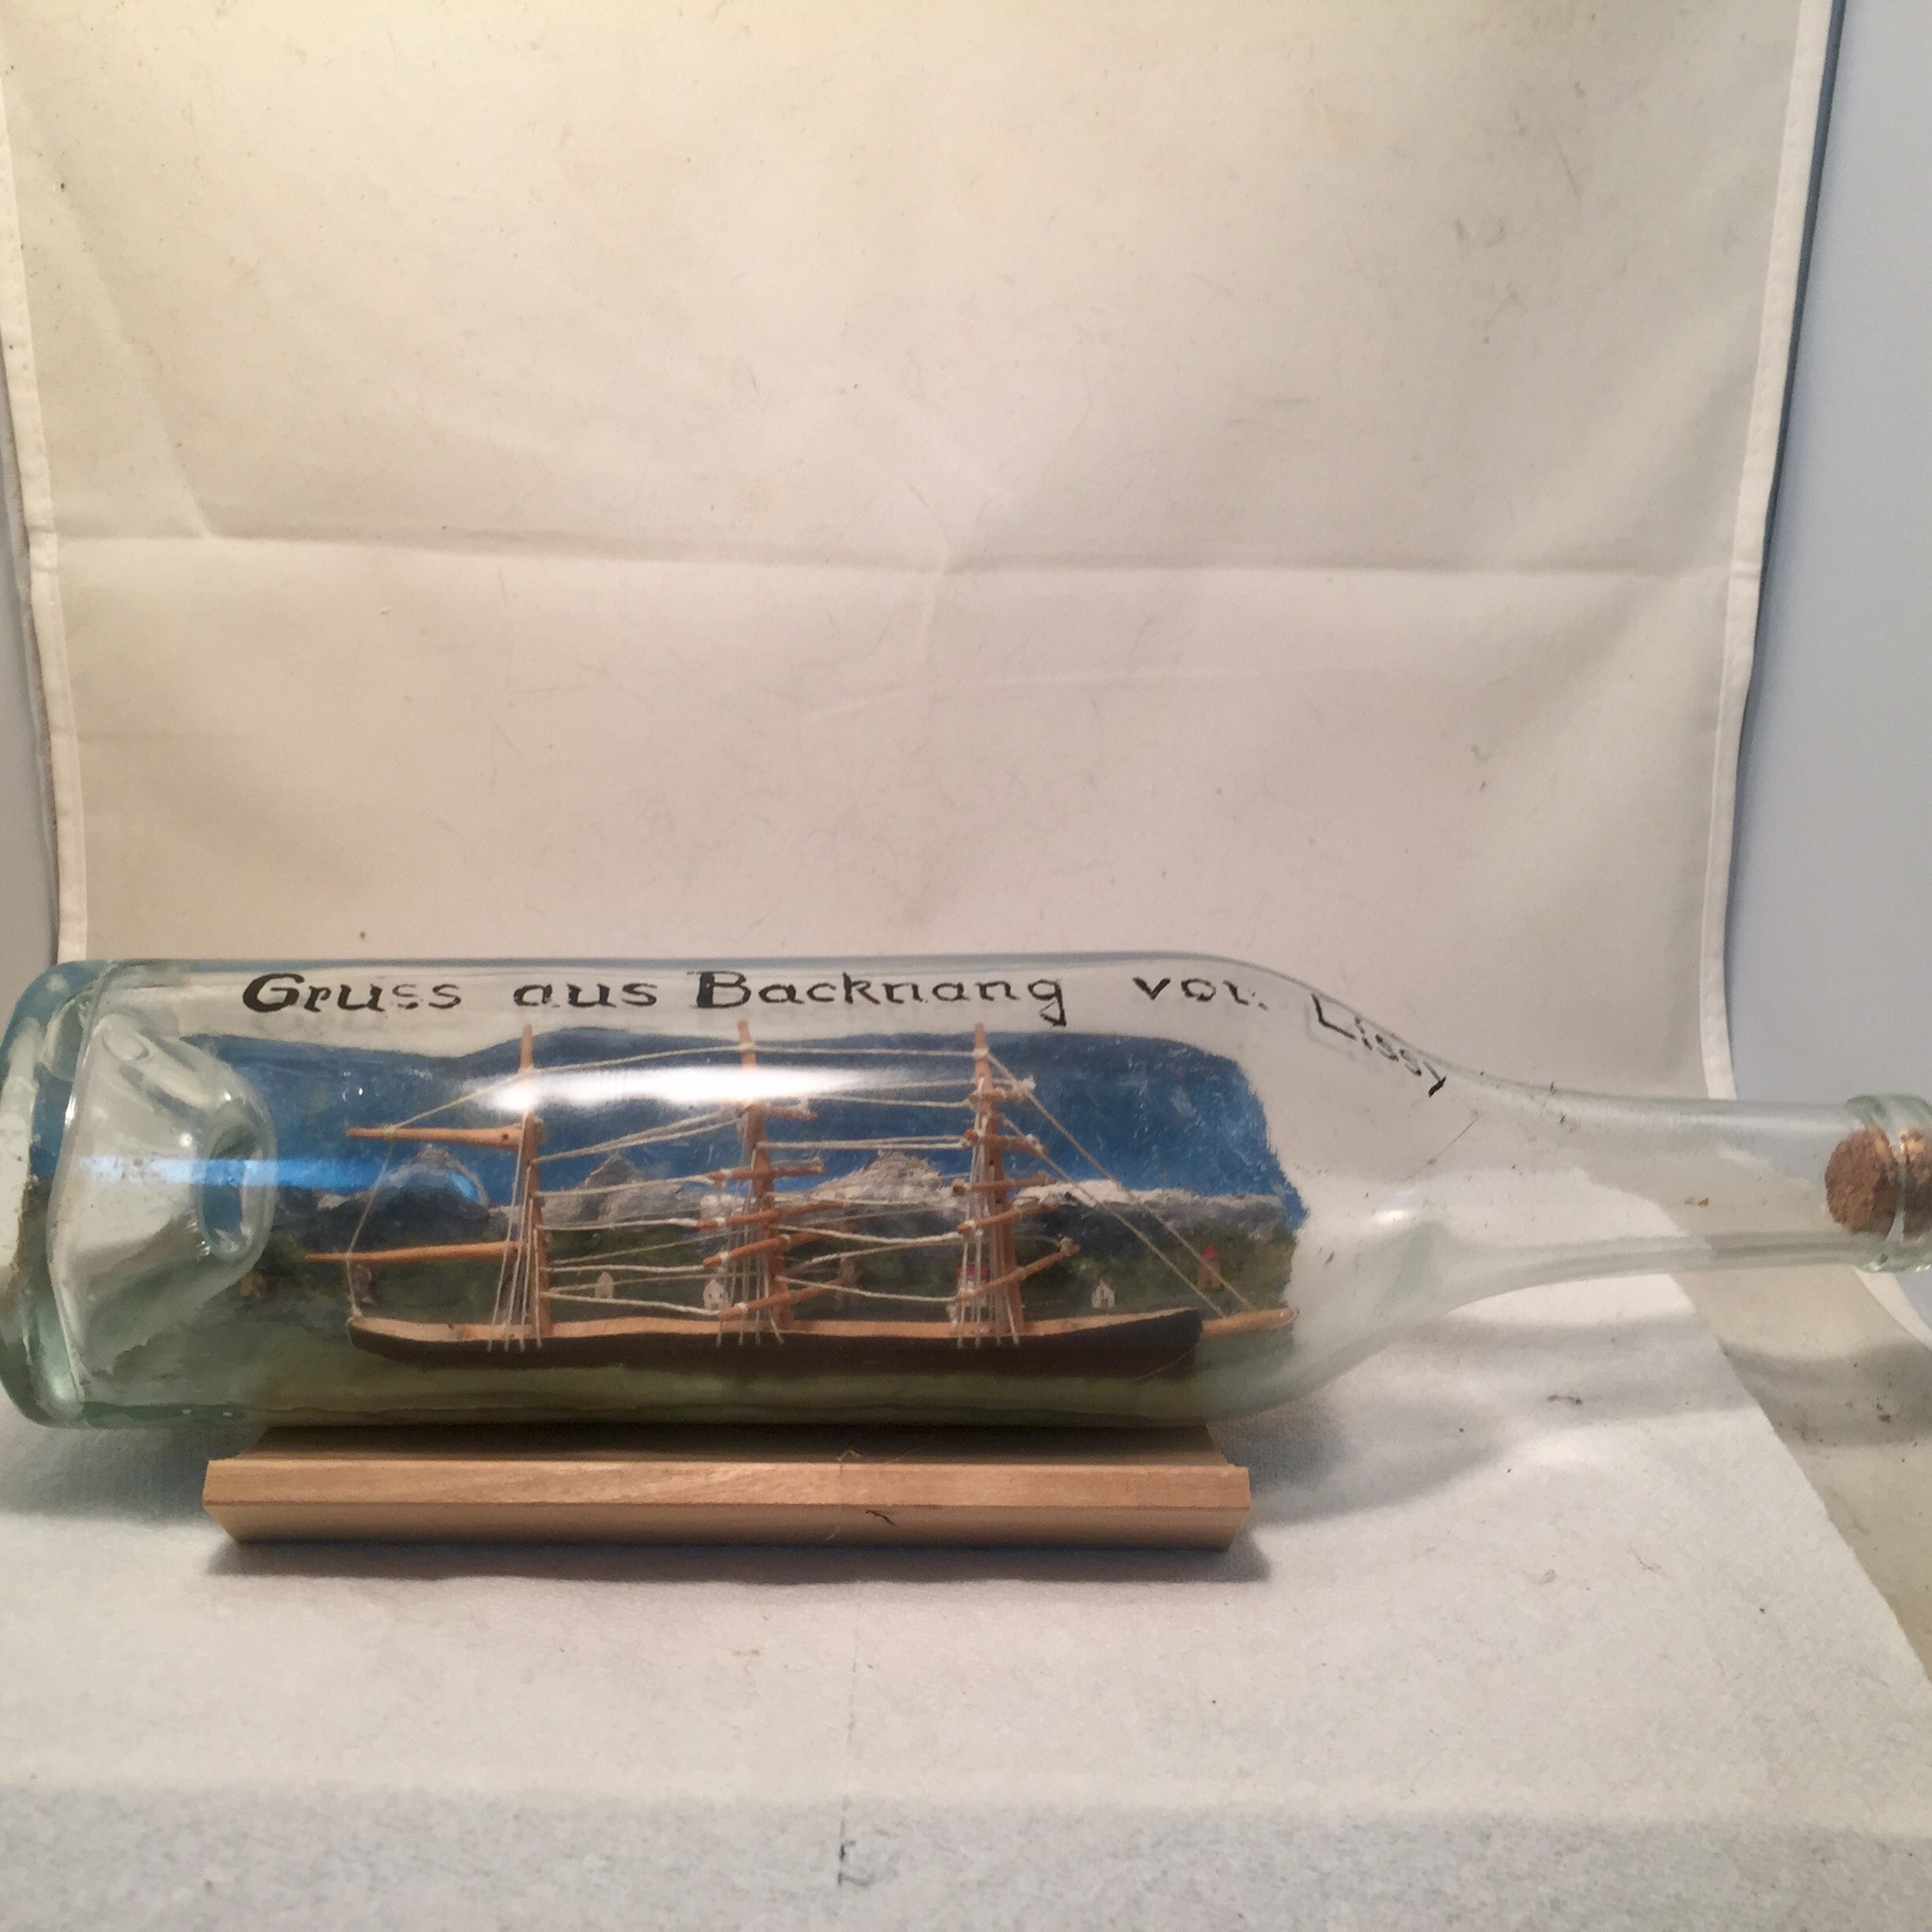 X German ship in a bottle